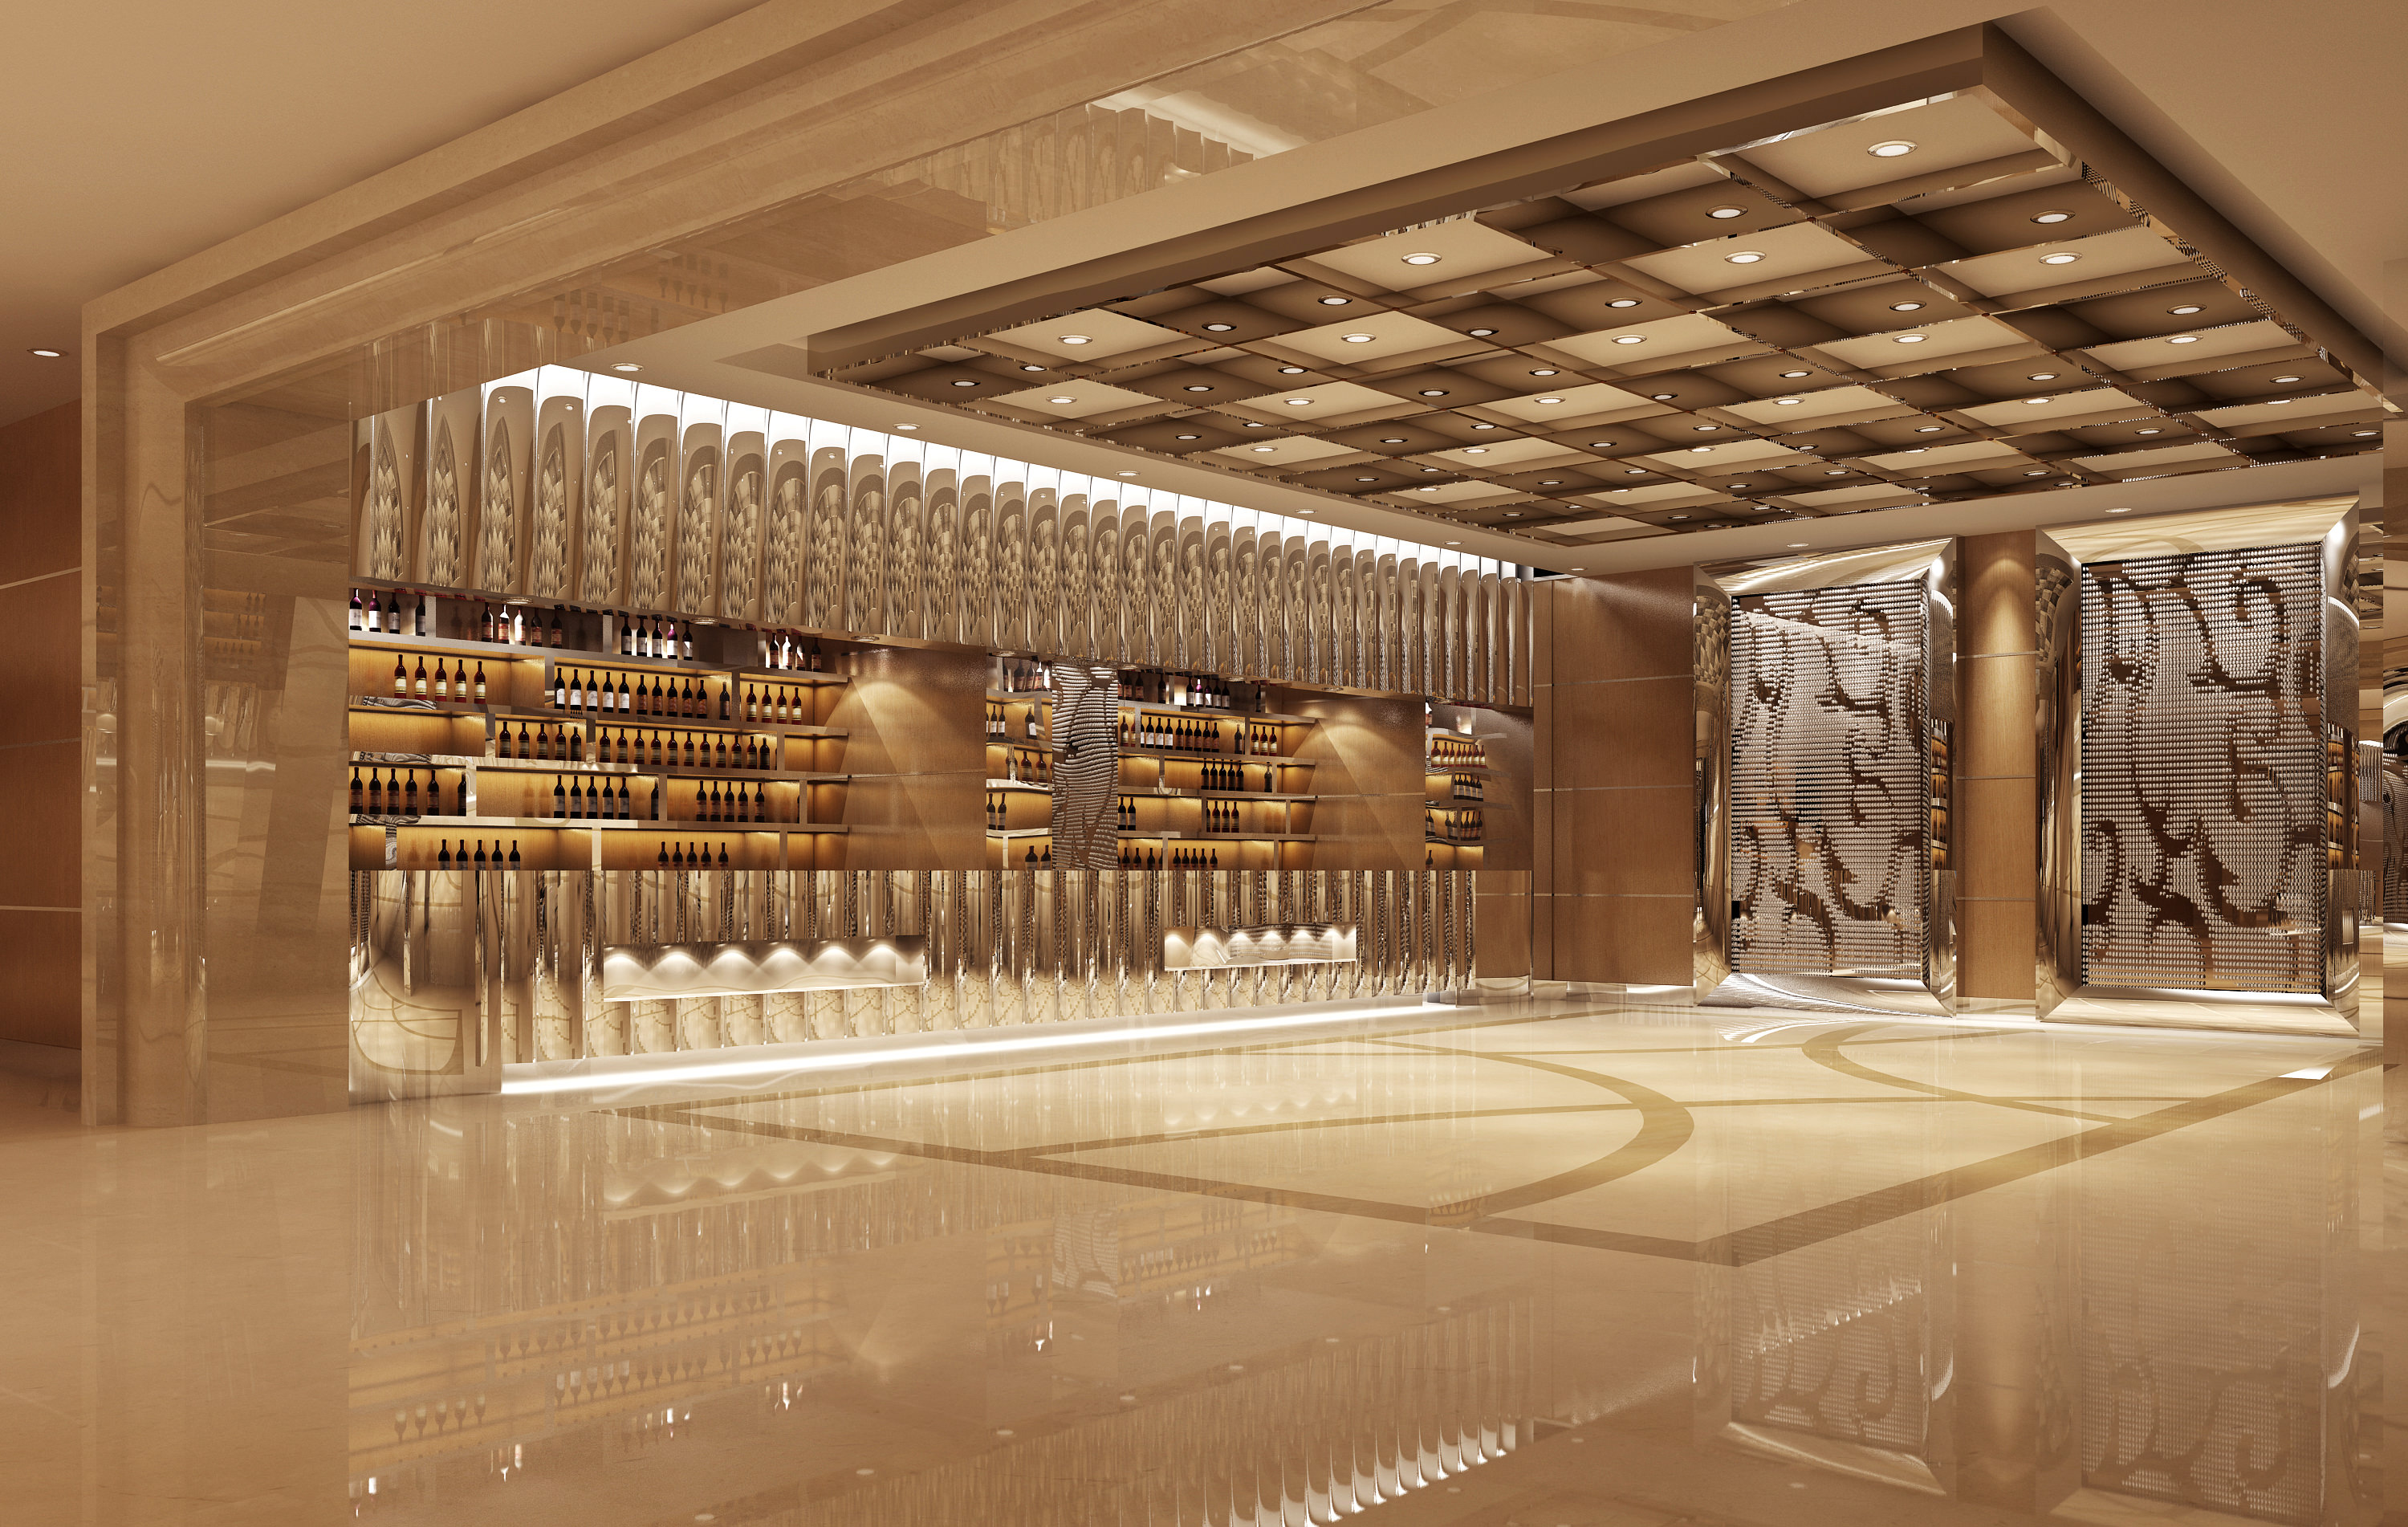 Luxury bar interior 3d model max for Food bar 3d model